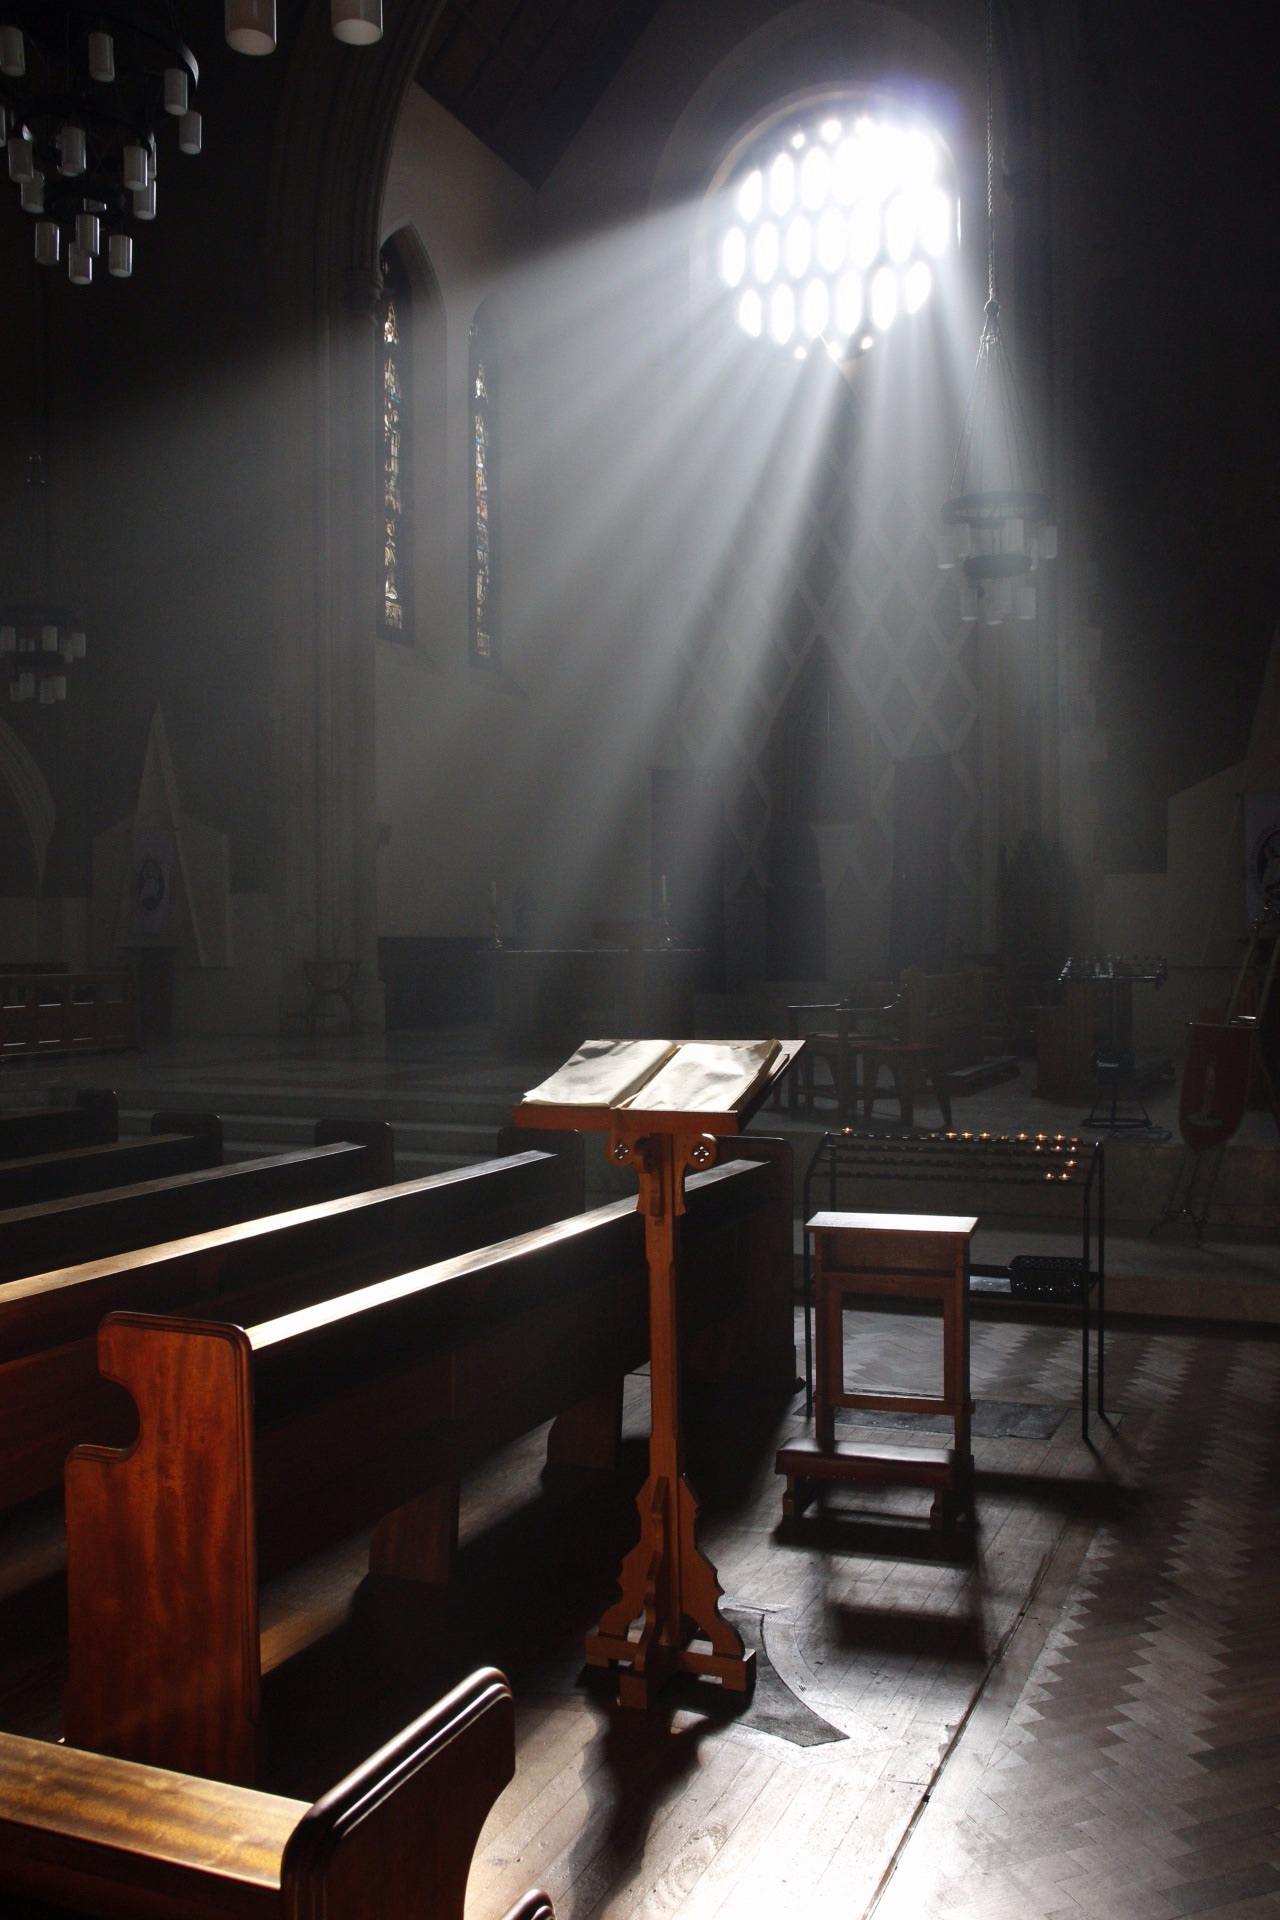 This photo is straight out of the camera, unedited. Incredible moment shining down on the pulpit!